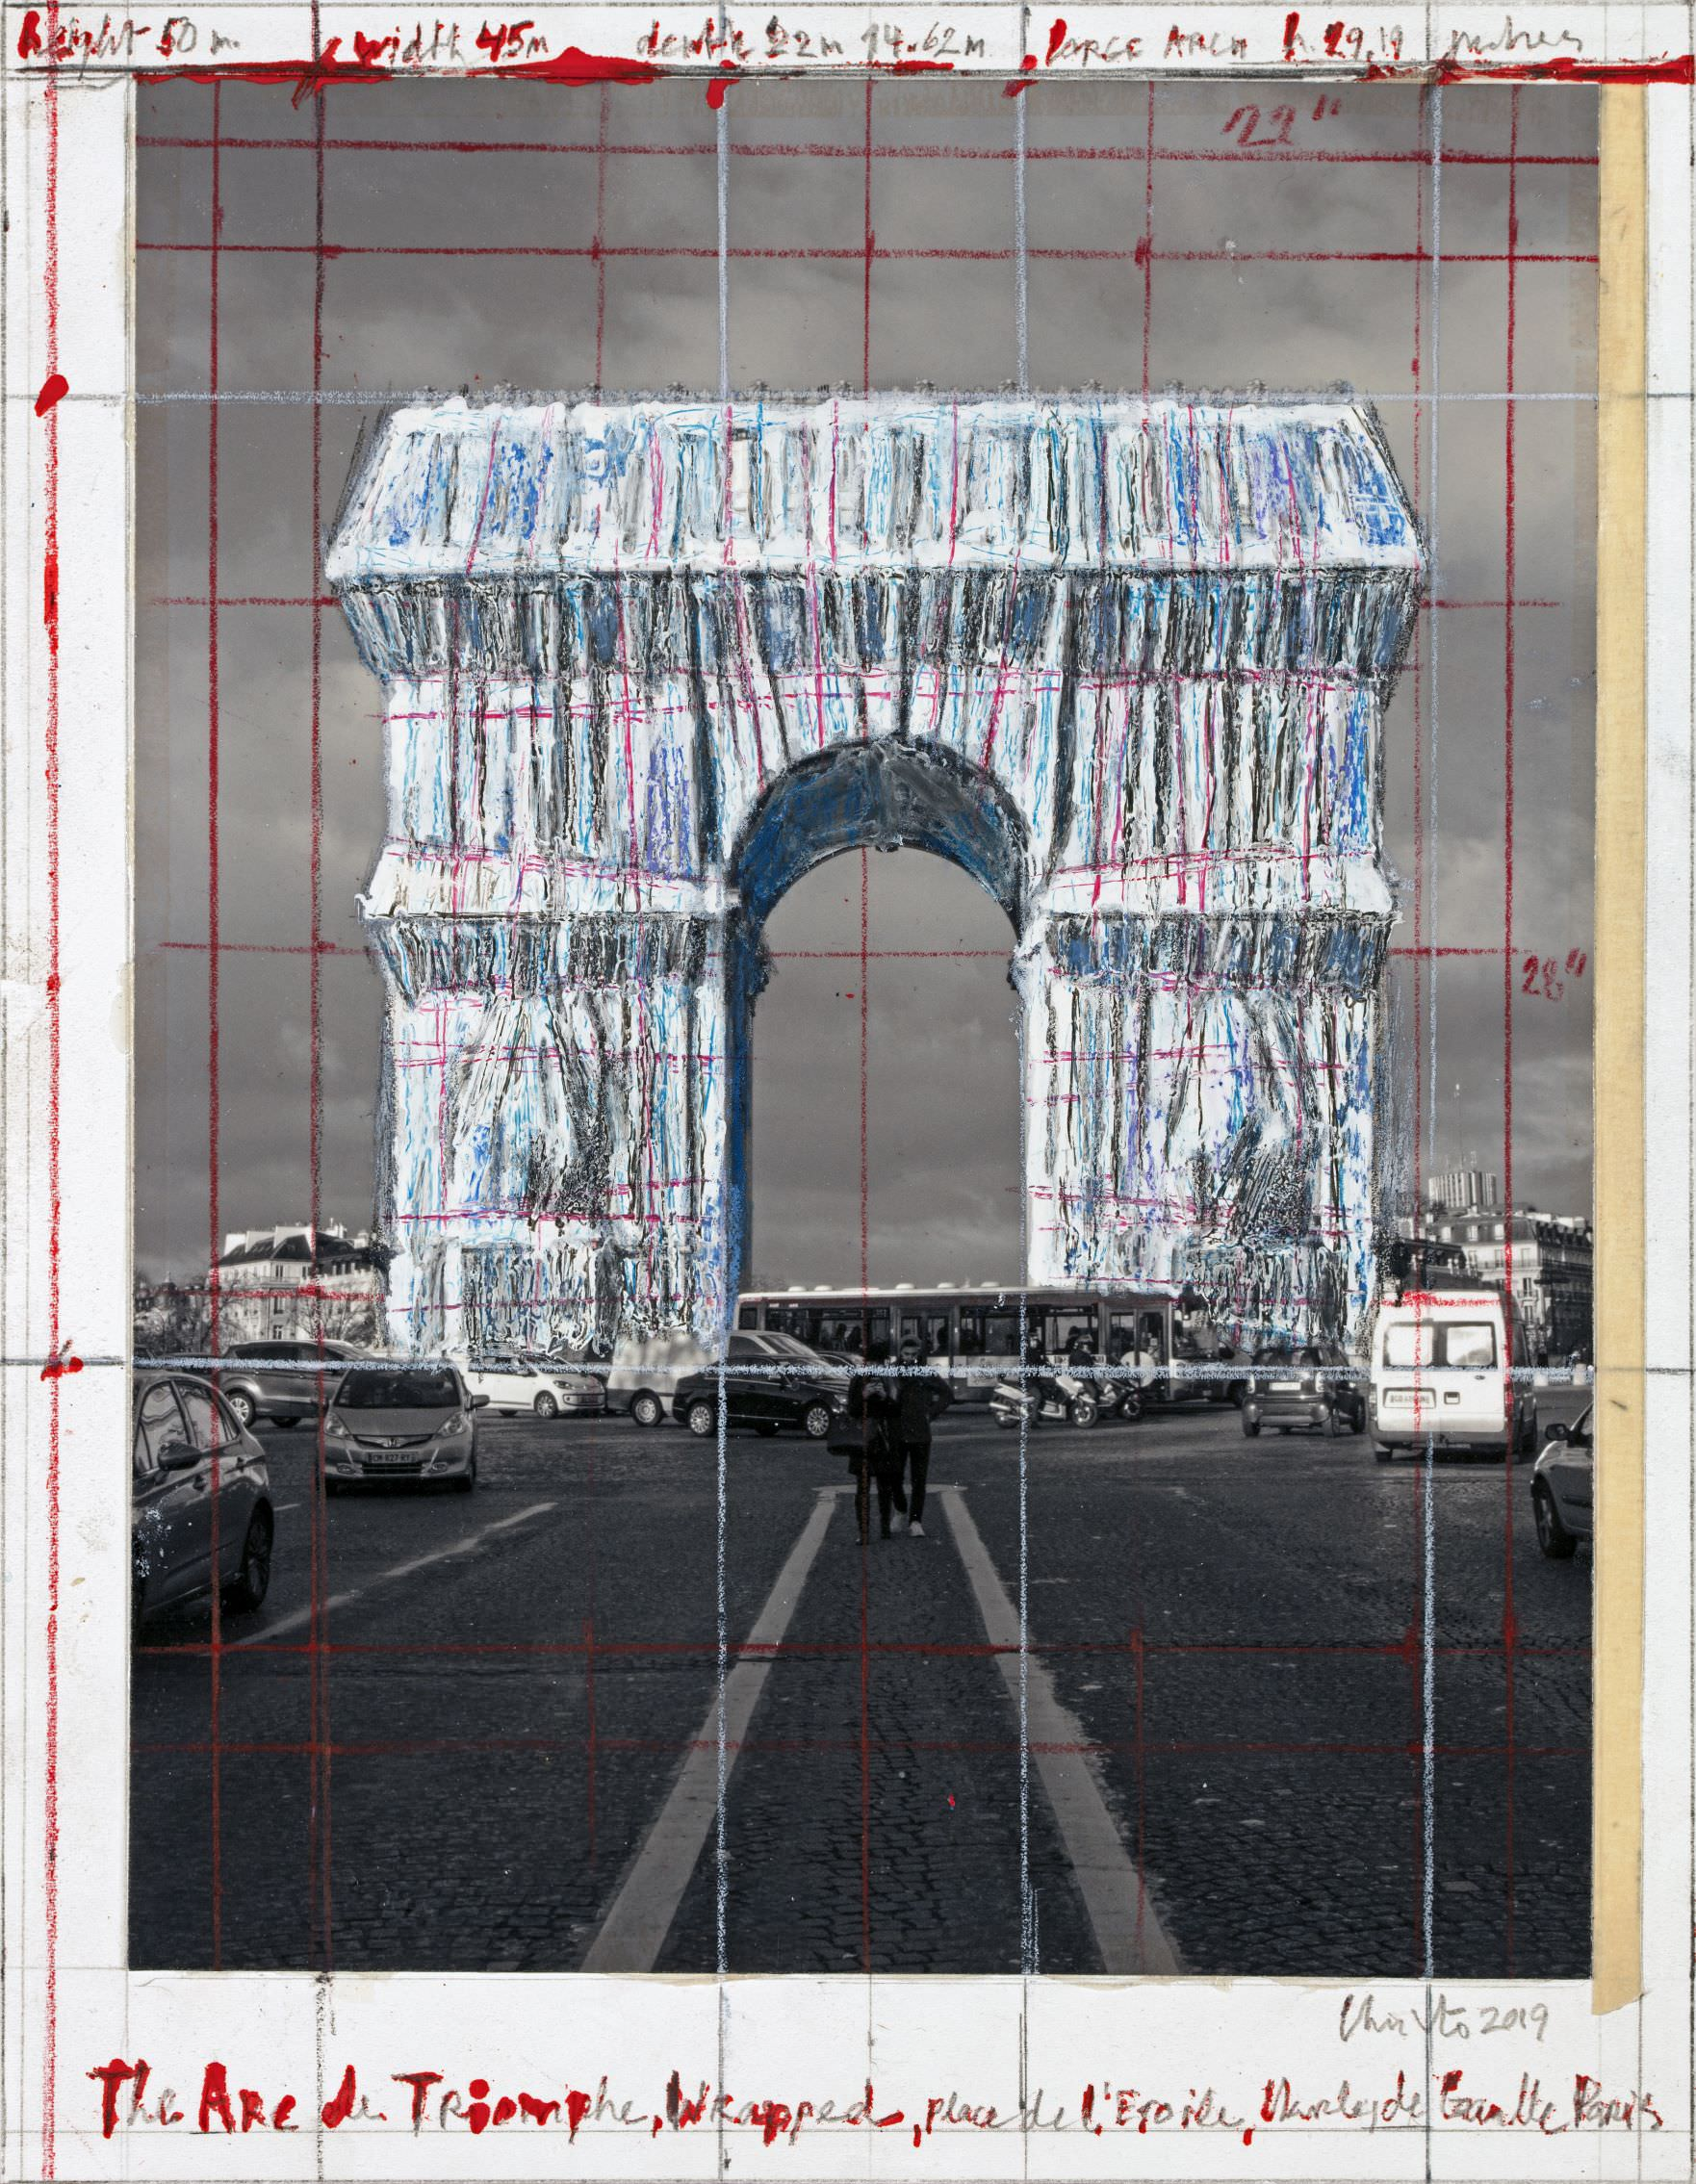 "Christo, The Arc de Triomphe, Wrapped, Place de l'Etoile, Charles de Gaulle, Paris, Collage 2019, 11 x 8 1/2"" (28 x 21.5 cm), Pencil, wax crayon, enamel paint, photograph by Wolfgang Volz and tape, Photo: André Grossmann © 2019 Christo"